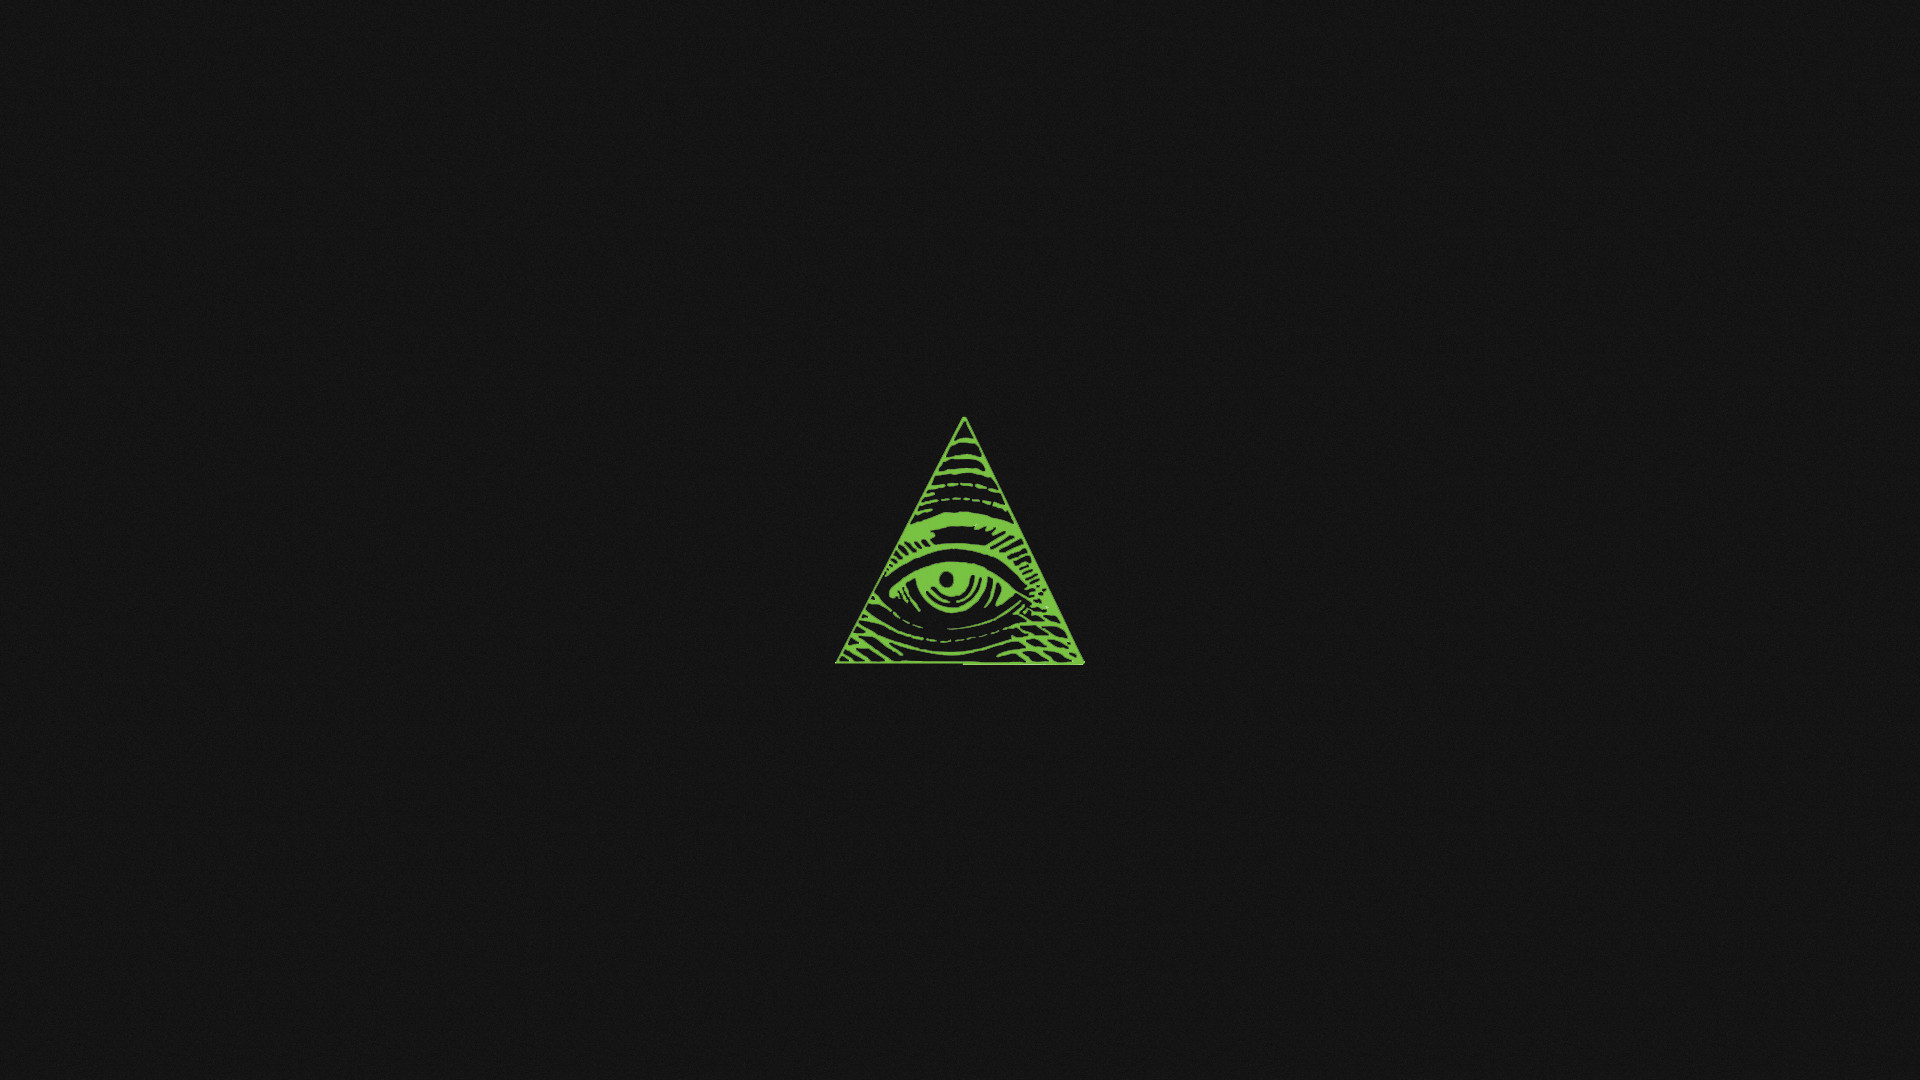 1920x1080 Download Illuminati Wallpaper 1280x800 | Wallpoper #